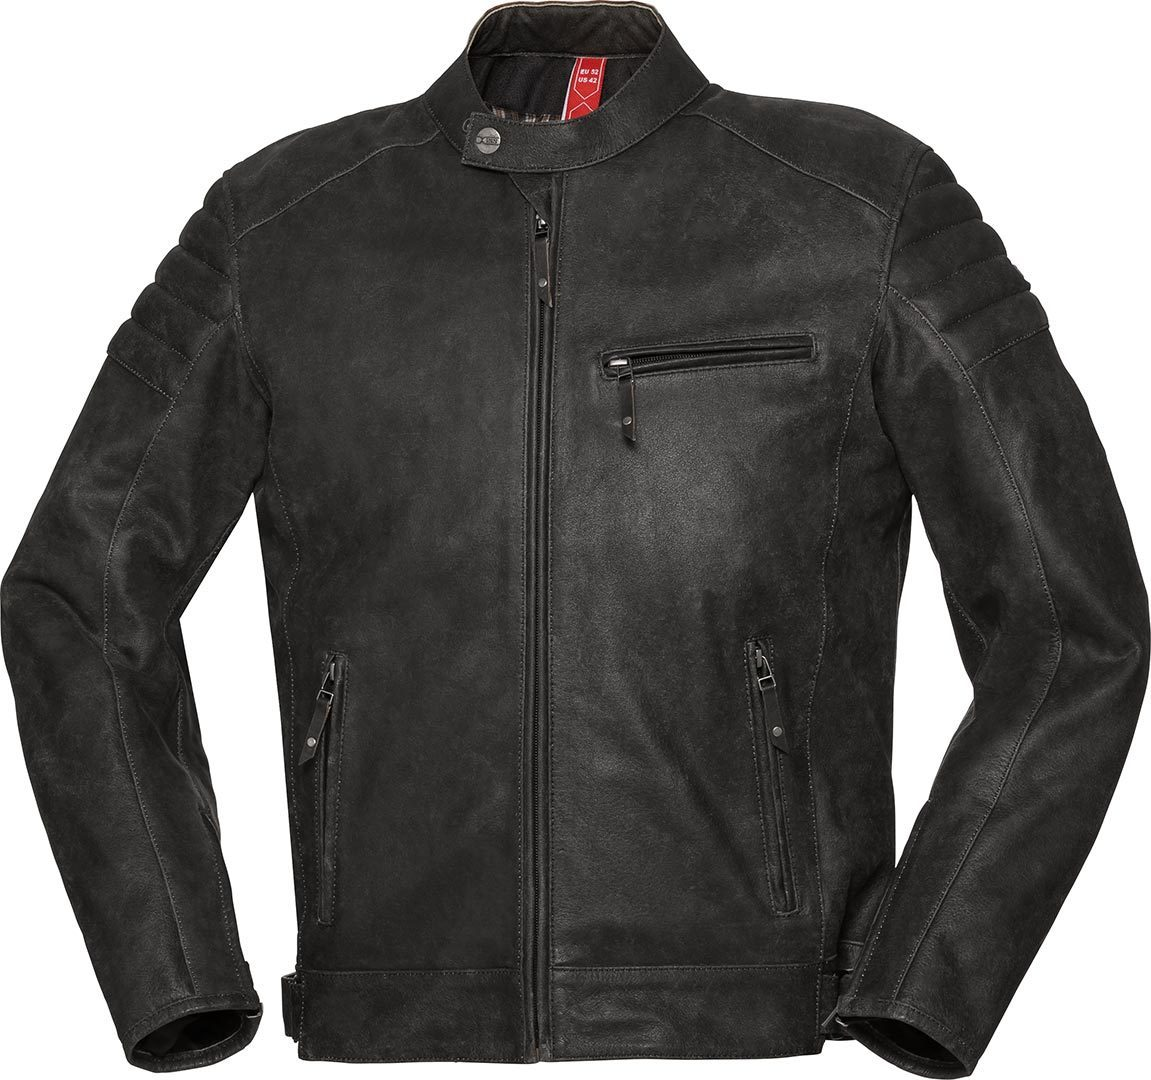 IXS X-Classic LD Cruiser Motorcycle Leather Jacket, black, Size 52, black, Size 52 from IXS